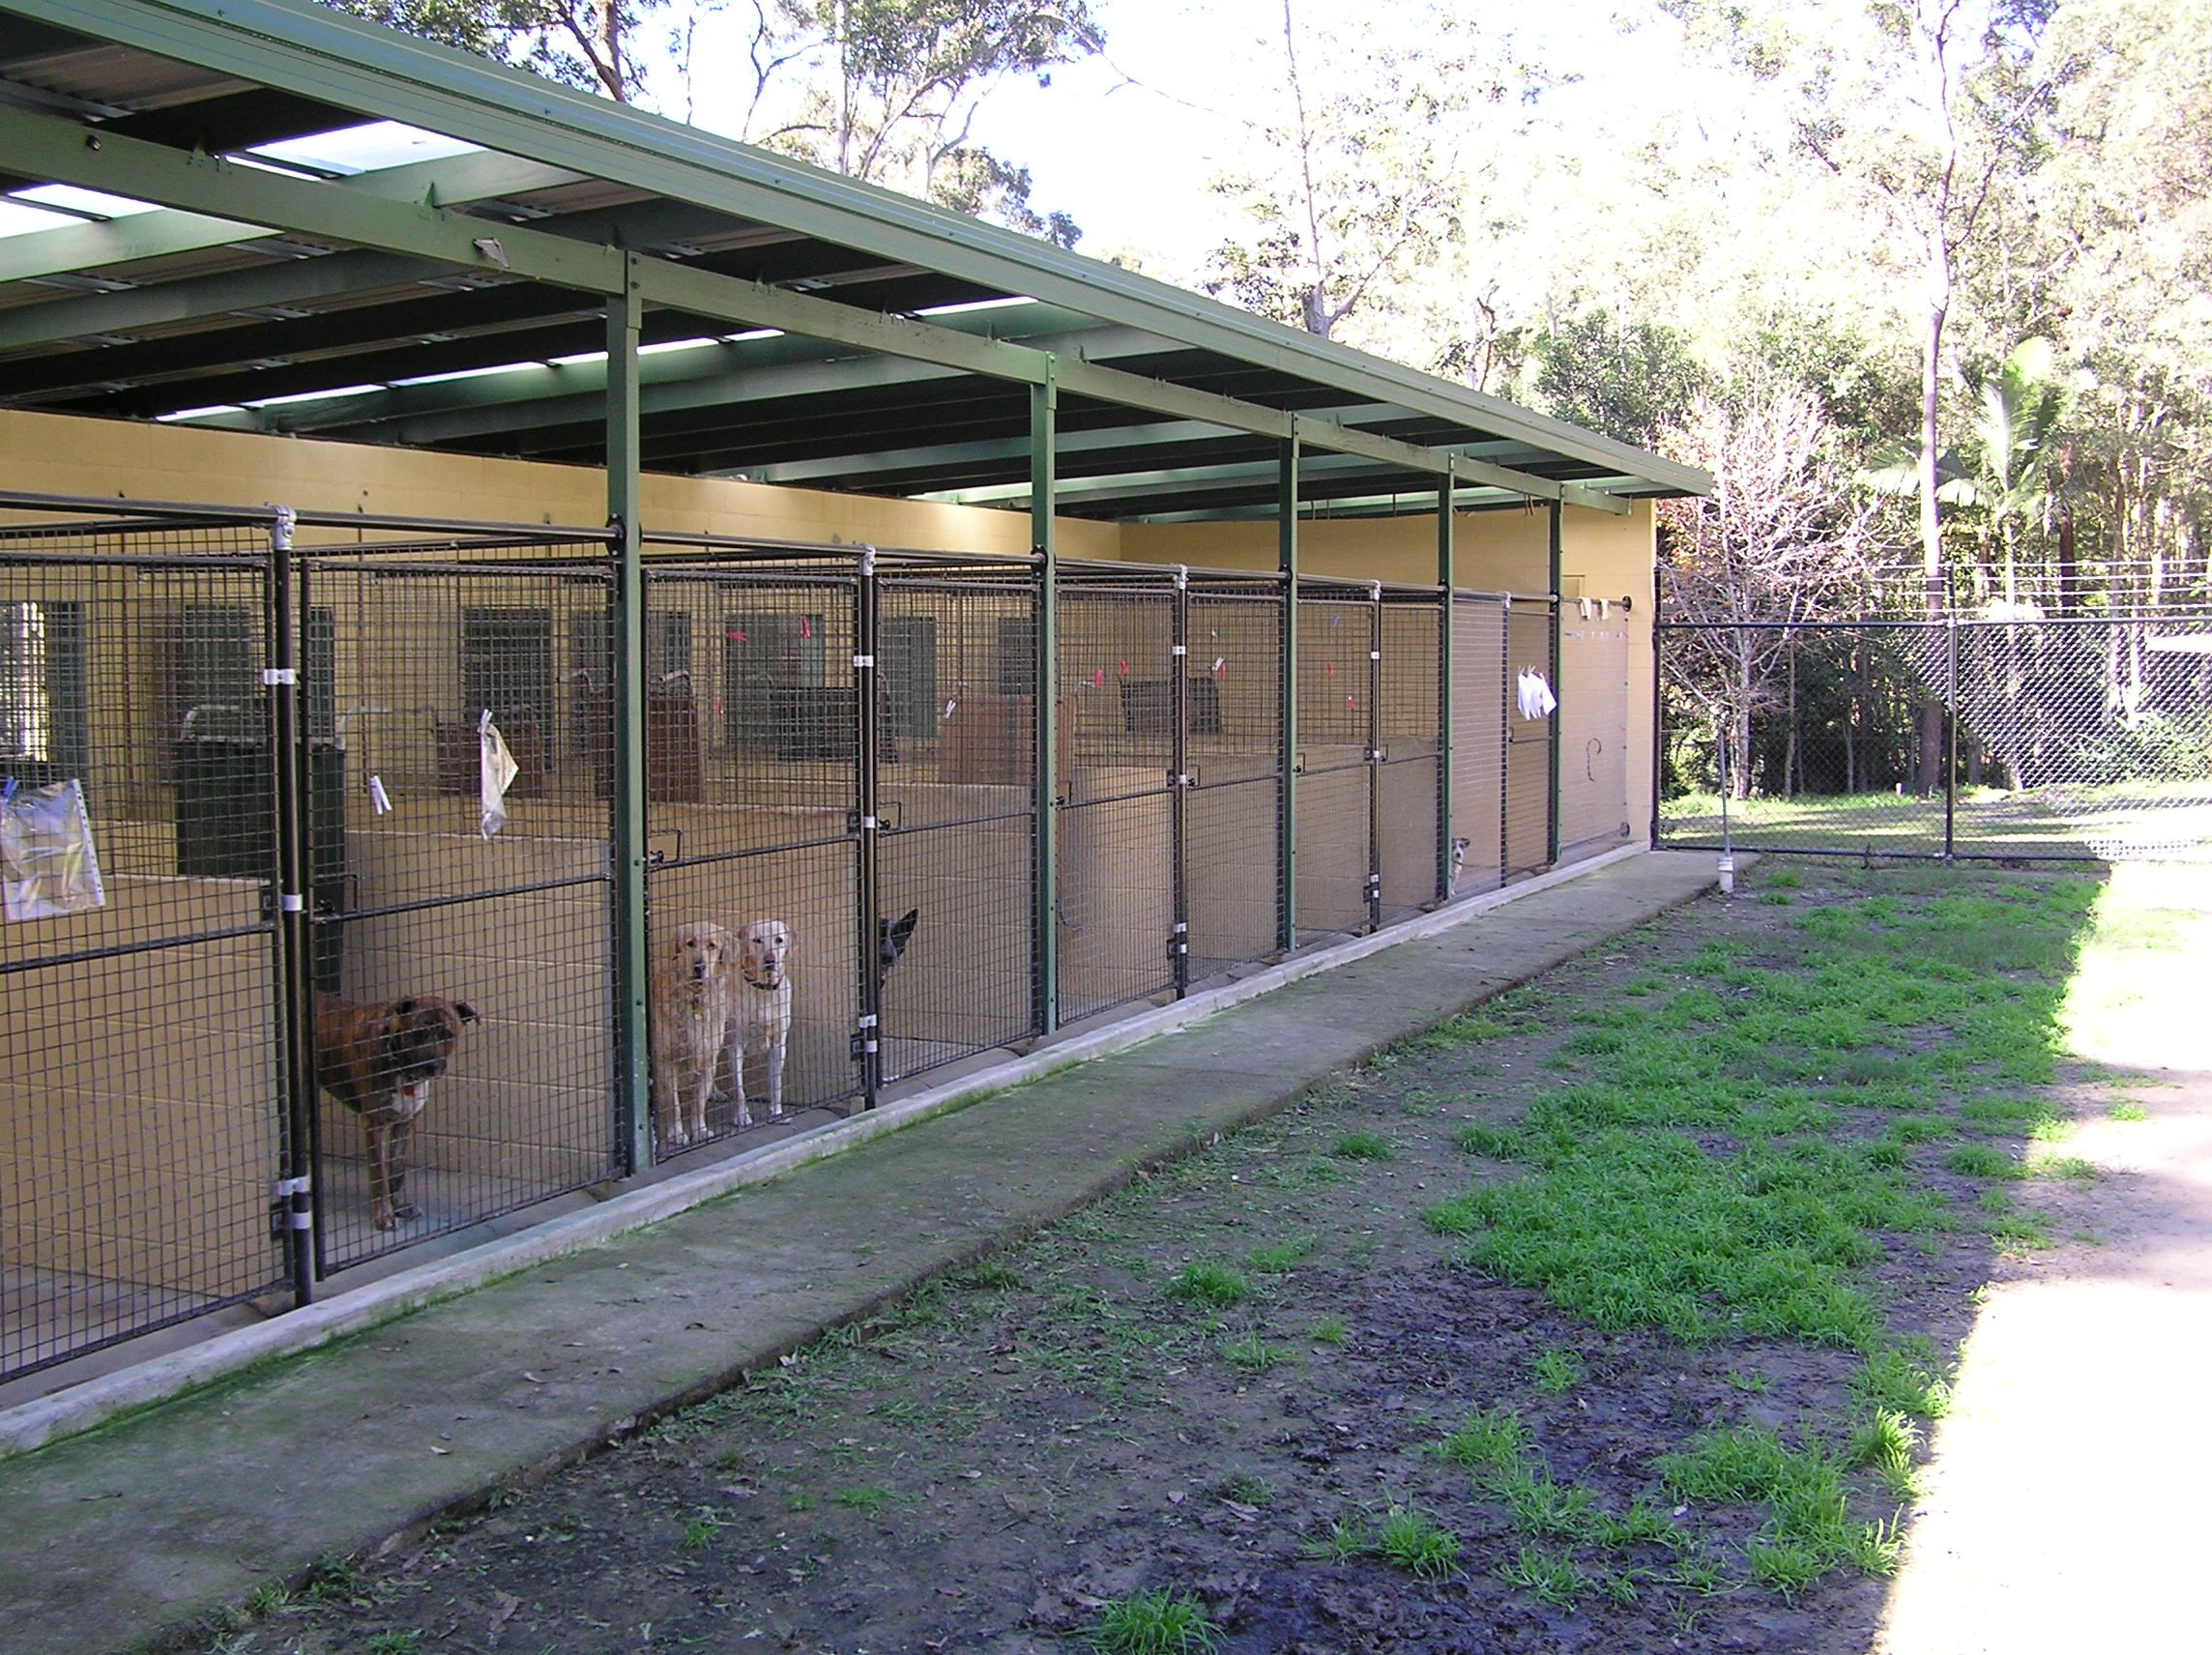 Best dog kennel designs stafford boarding kennel for Dog boarding in homes